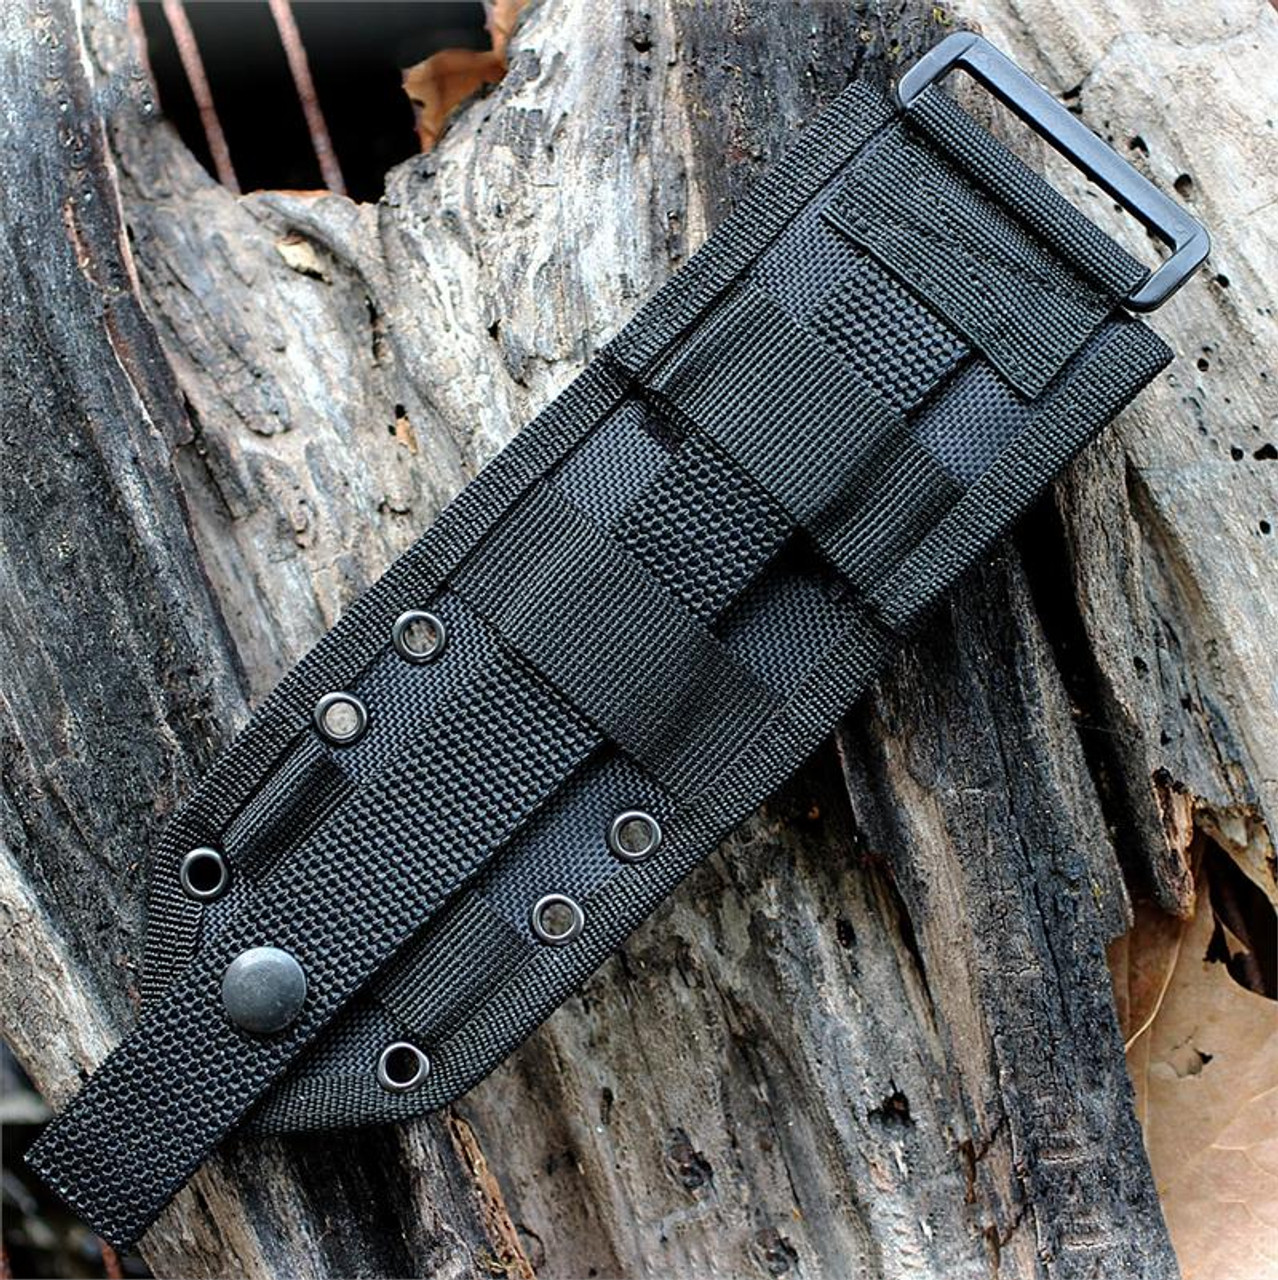 ESEE 3P-MB-DE Plain Edge, Dark Earth Brown Coated, Black Molded Sheath with Molle Back